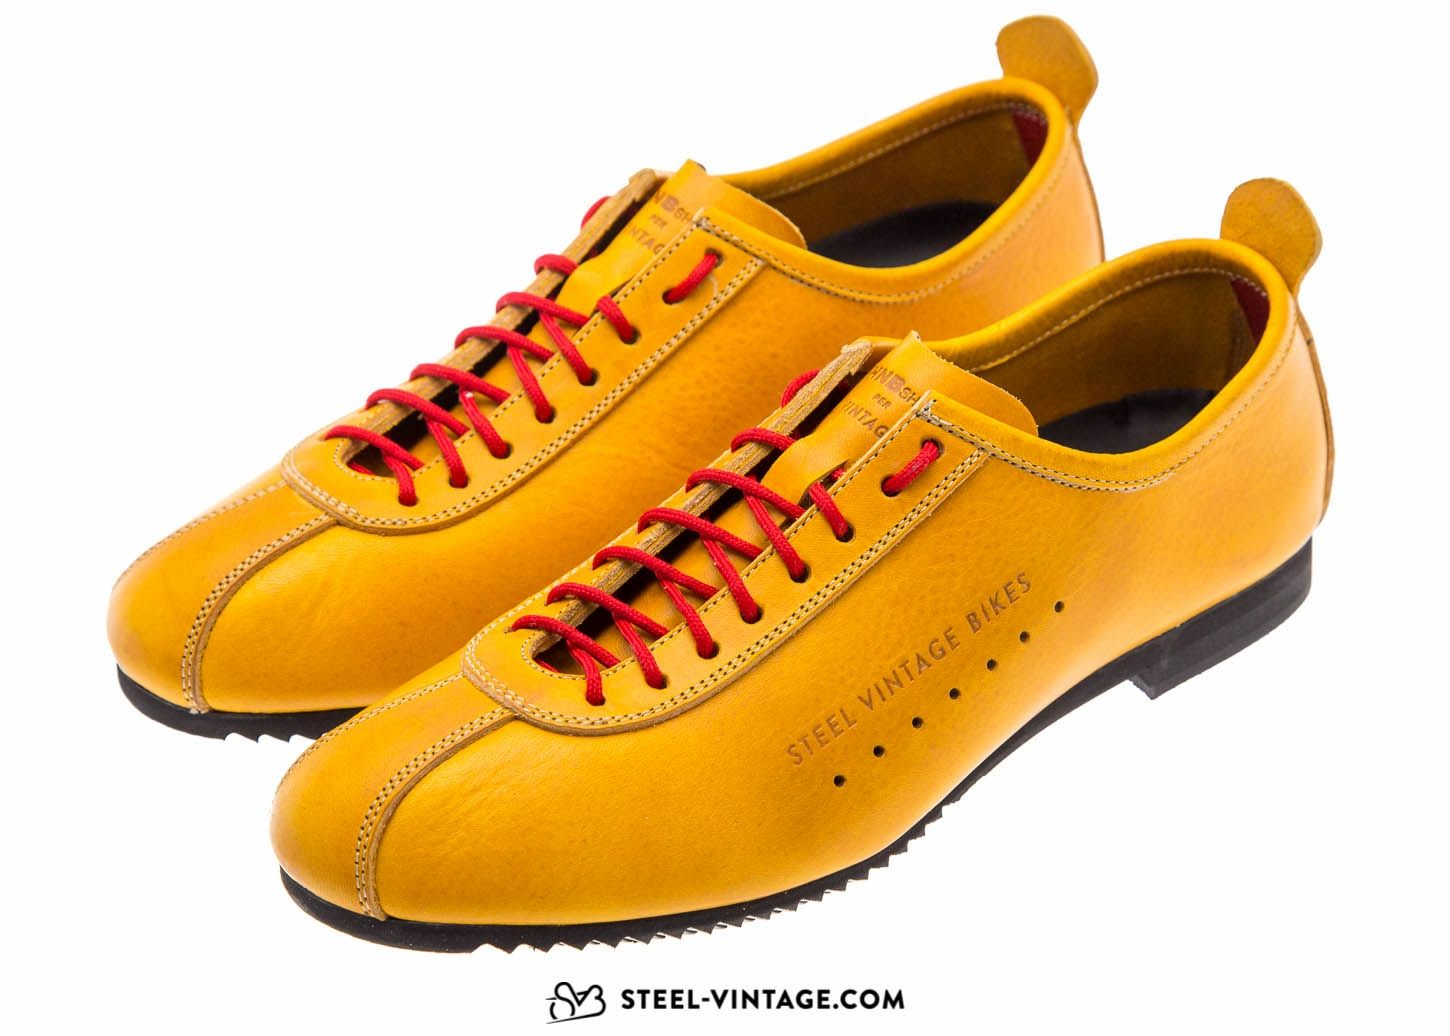 SVB Competition Cycling Shoes Honey